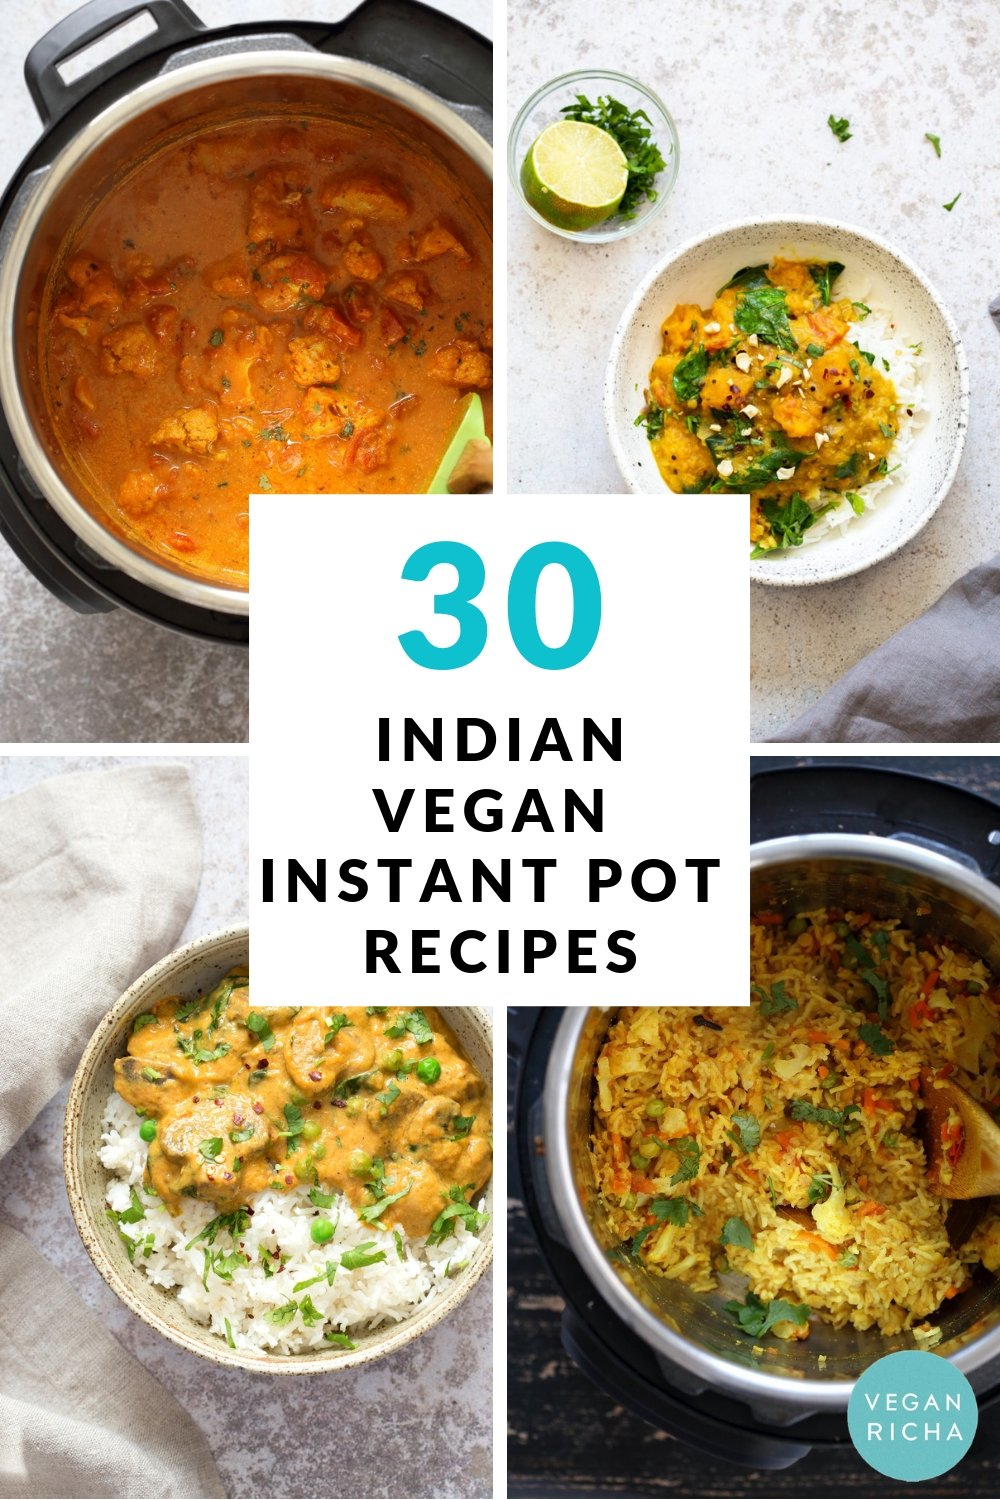 30 Instant Pot Vegan Indian Recipes! Dals, Beans, Tikka Masala, Butter Sauce, Chana Masala, Saag, Korma, Aloo Gobi, Kitchari Khichdi, Gajar Halwa and more. Indian Vegetarian Recipes. Glutenfree Soyfree Nutfree options.  #Veganricha #indianveganinstantpot #indianvegetarianinstantpot